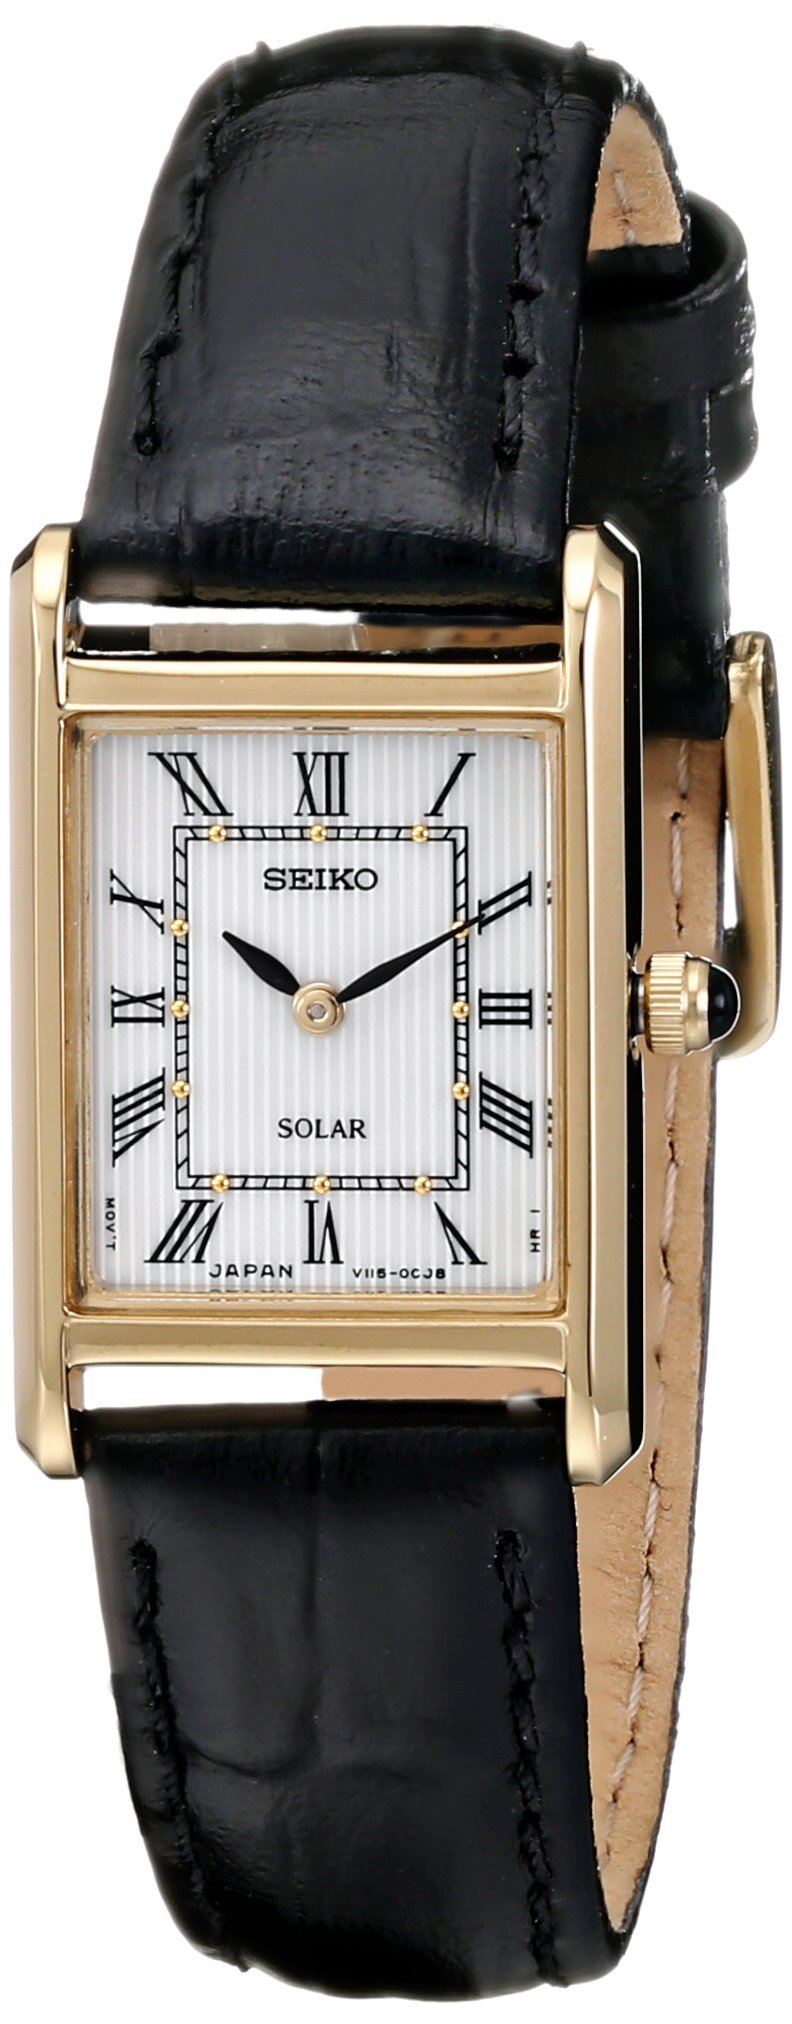 Seiko Women's SUP250 Stainless Steel Watch with Black Band by SEIKO